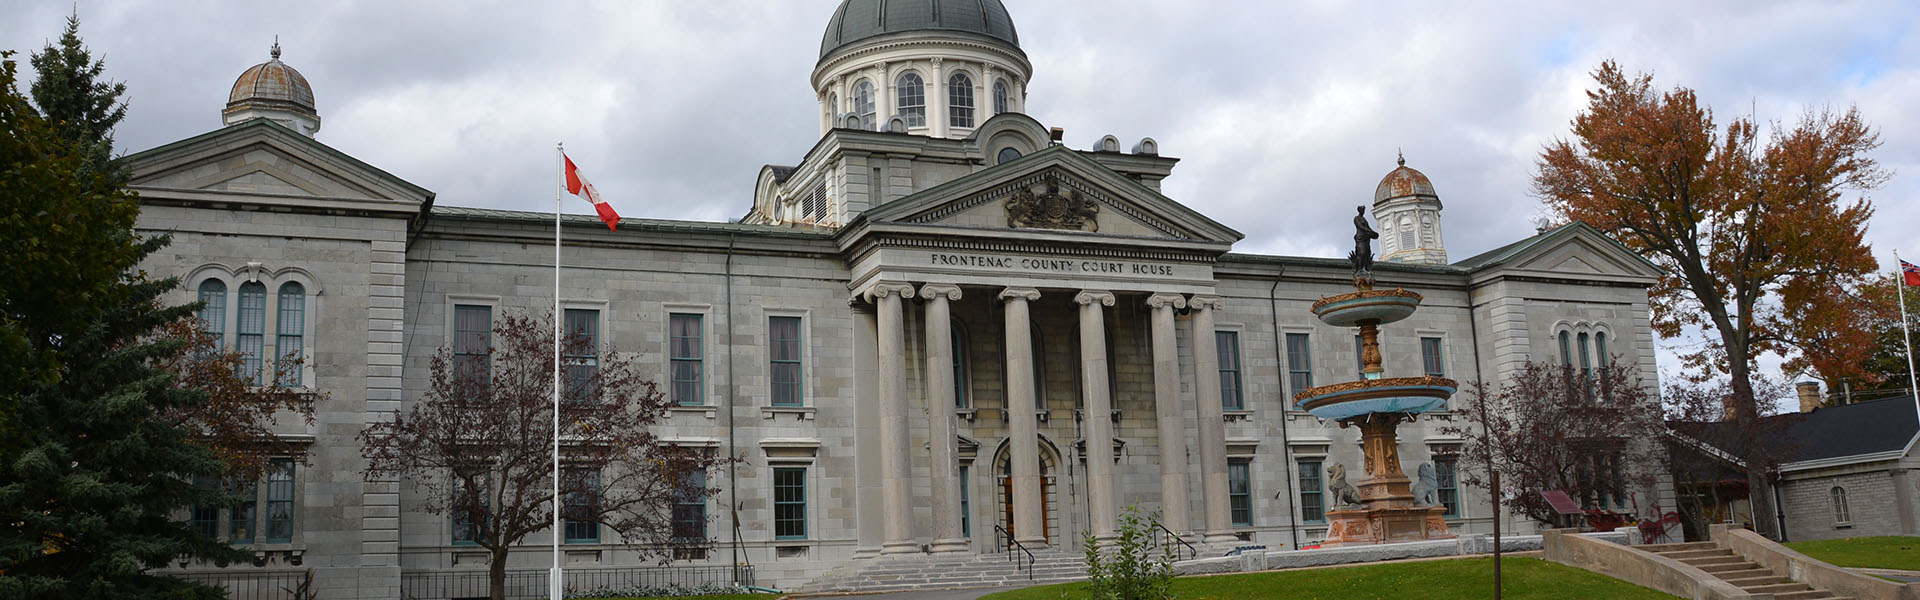 Frontenac County Courthouse